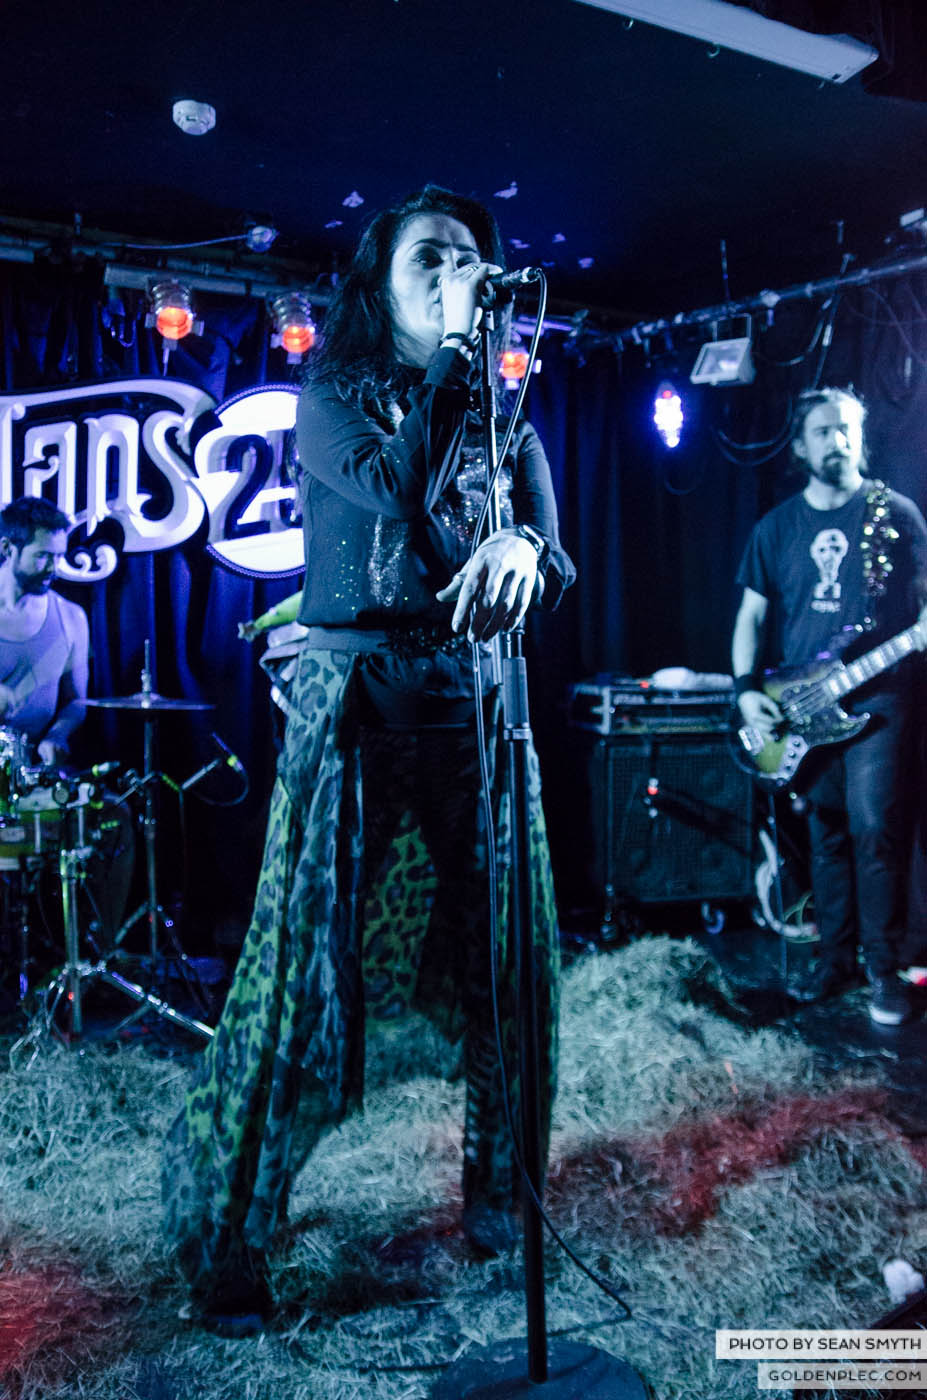 fight-likes-apes-at-whelans-by-sean-smyth-20-12-14-29-of-34